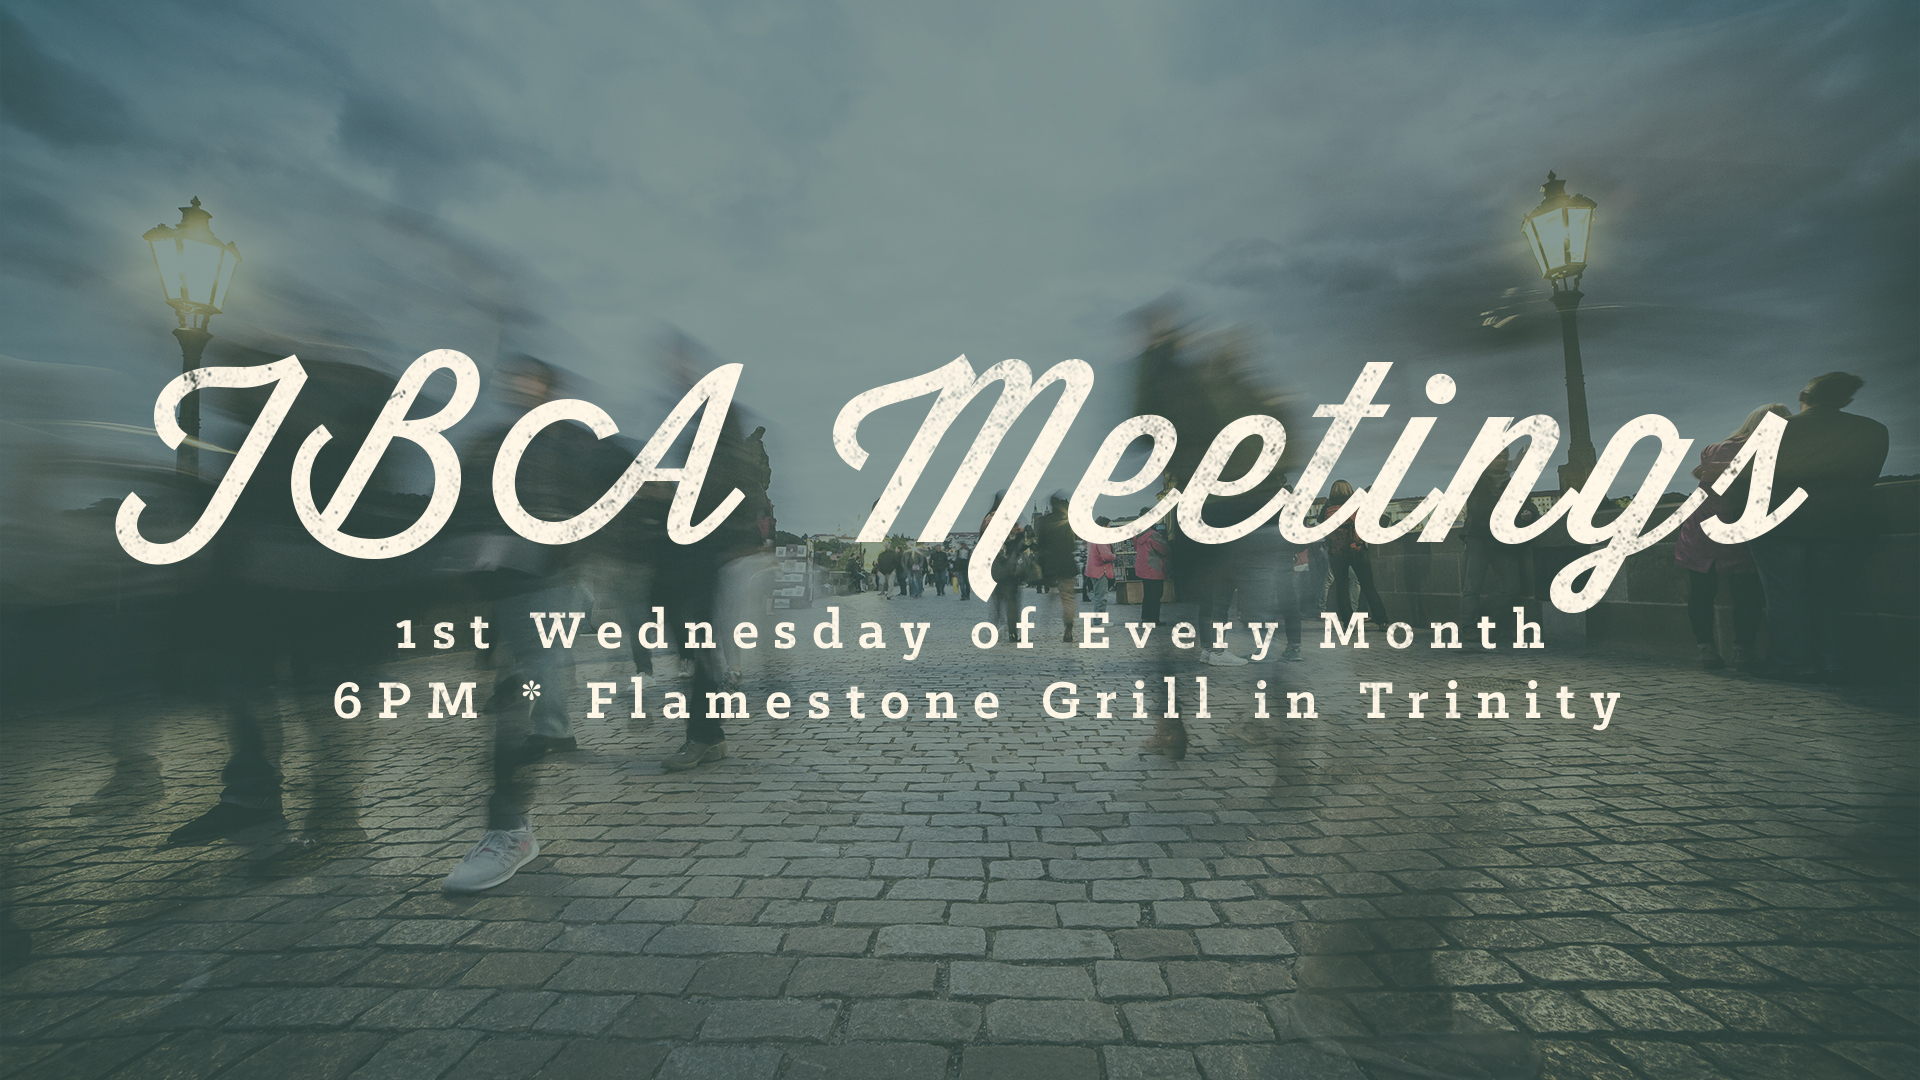 tba-meetings-flamestone